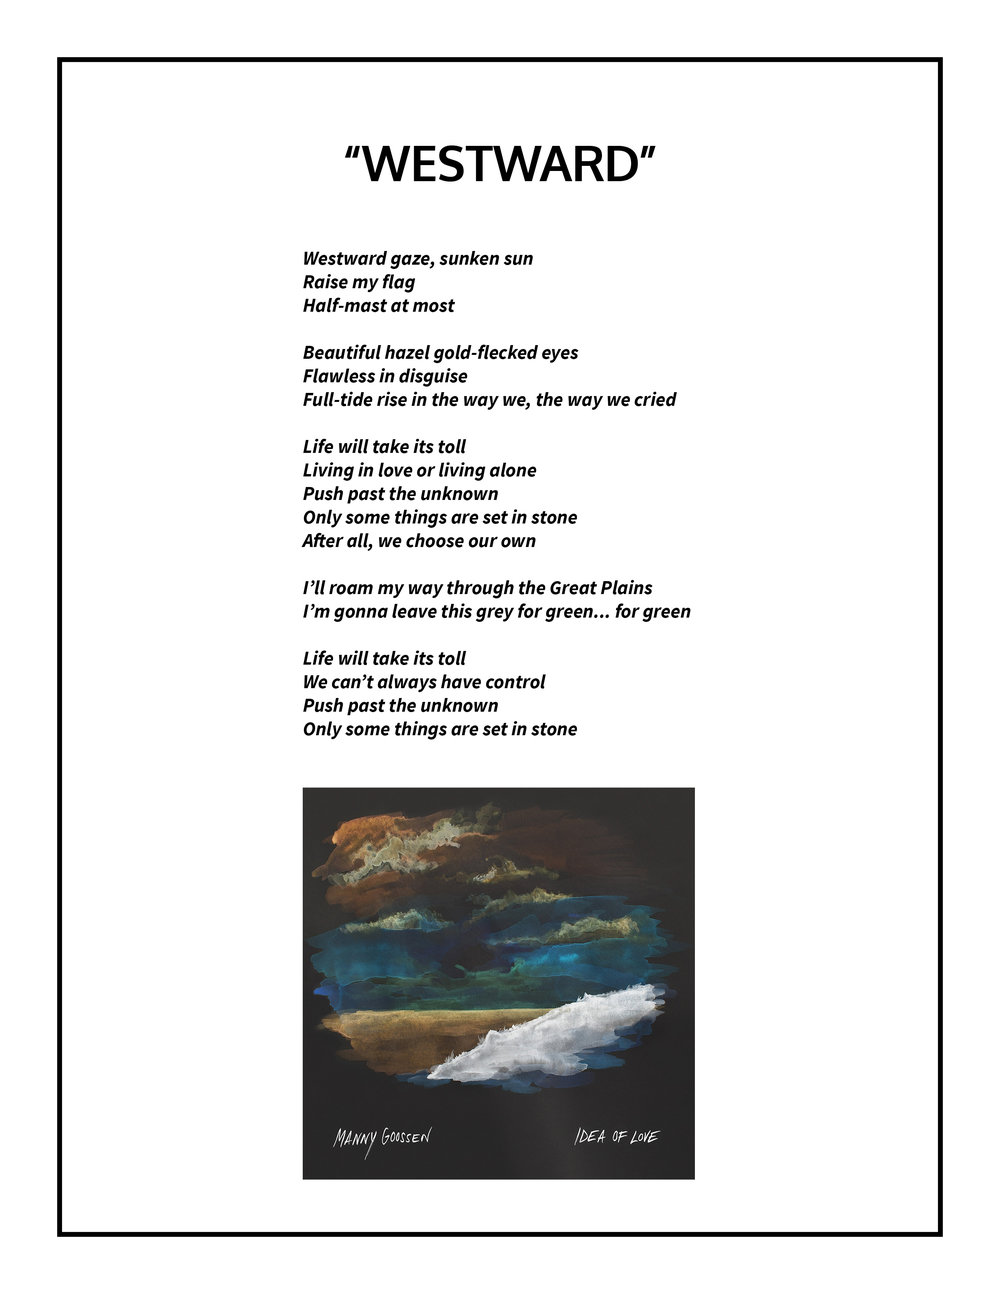 Westward Lyrics